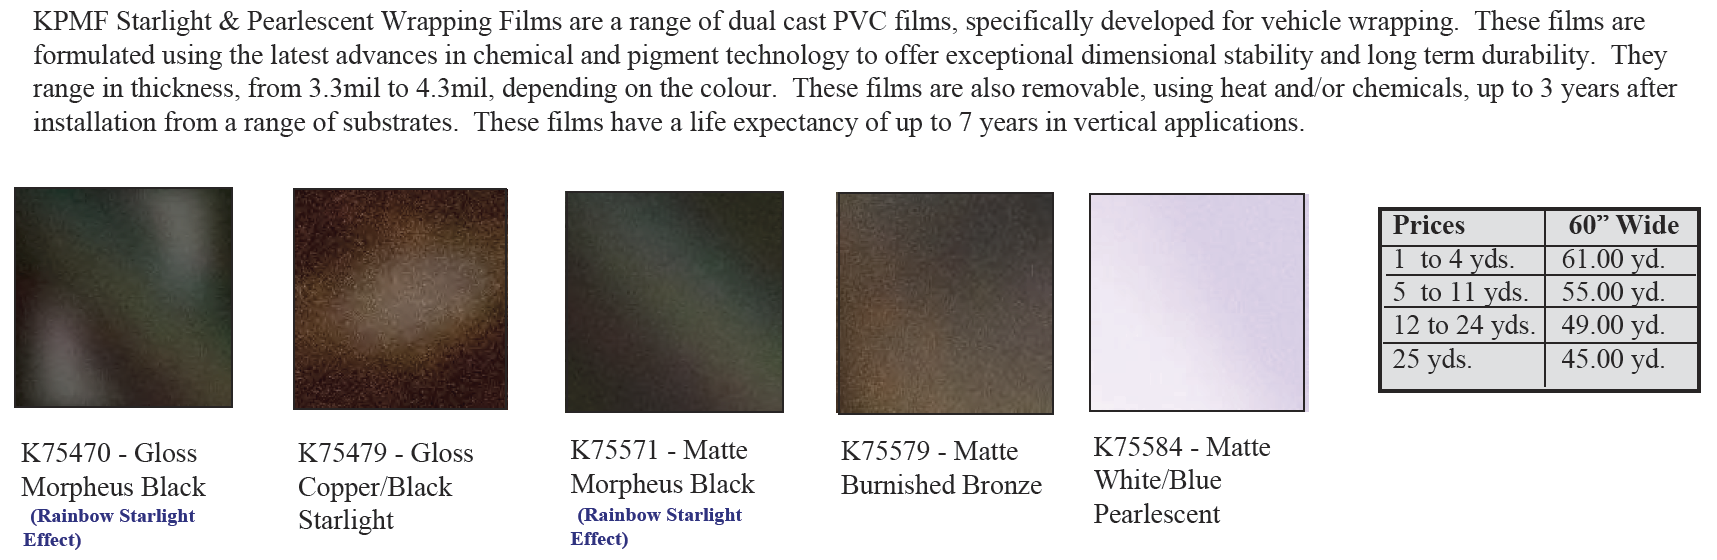 KPMF Star and Pearl descrip and colors - KPMF Starlight & Pearlescent Vehicle Wrapping Films